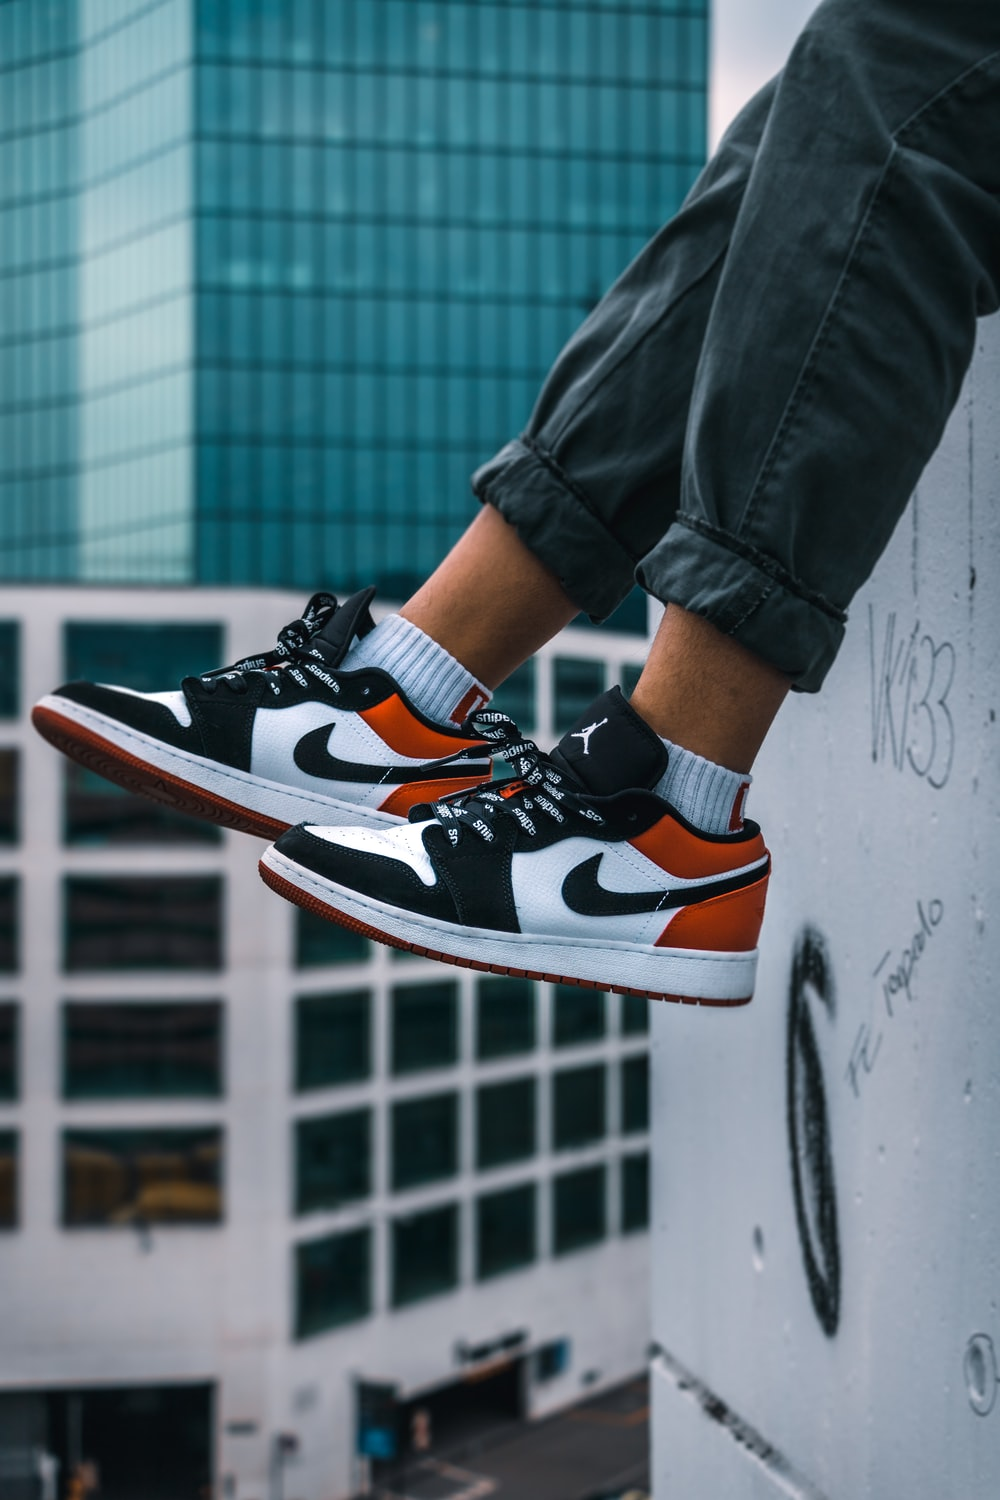 man sitting on the ledge of a building wearing Air Jordan 1 low-top shoes